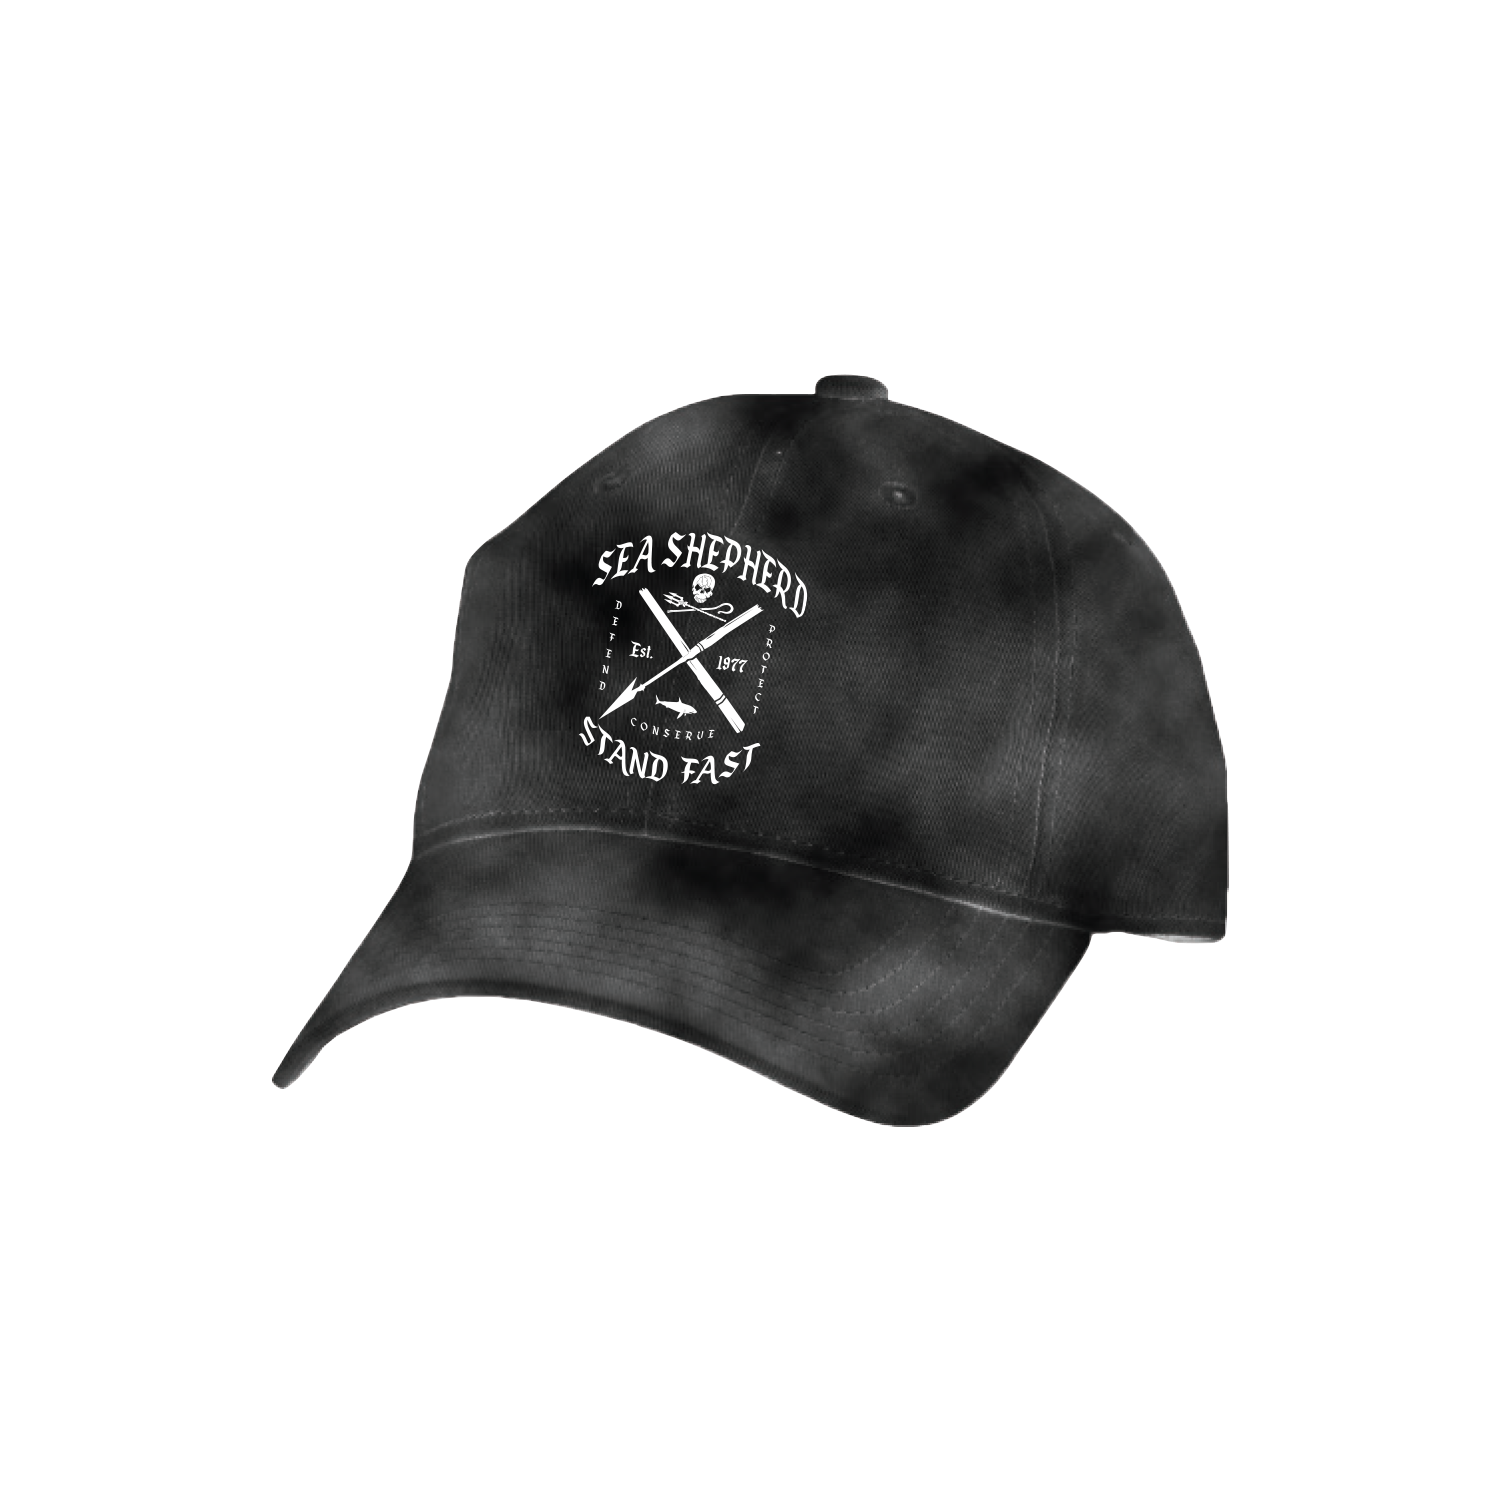 Sea Shepherd - Standfast - Standfast - 100% Organic Cotton Cap - Acid Black